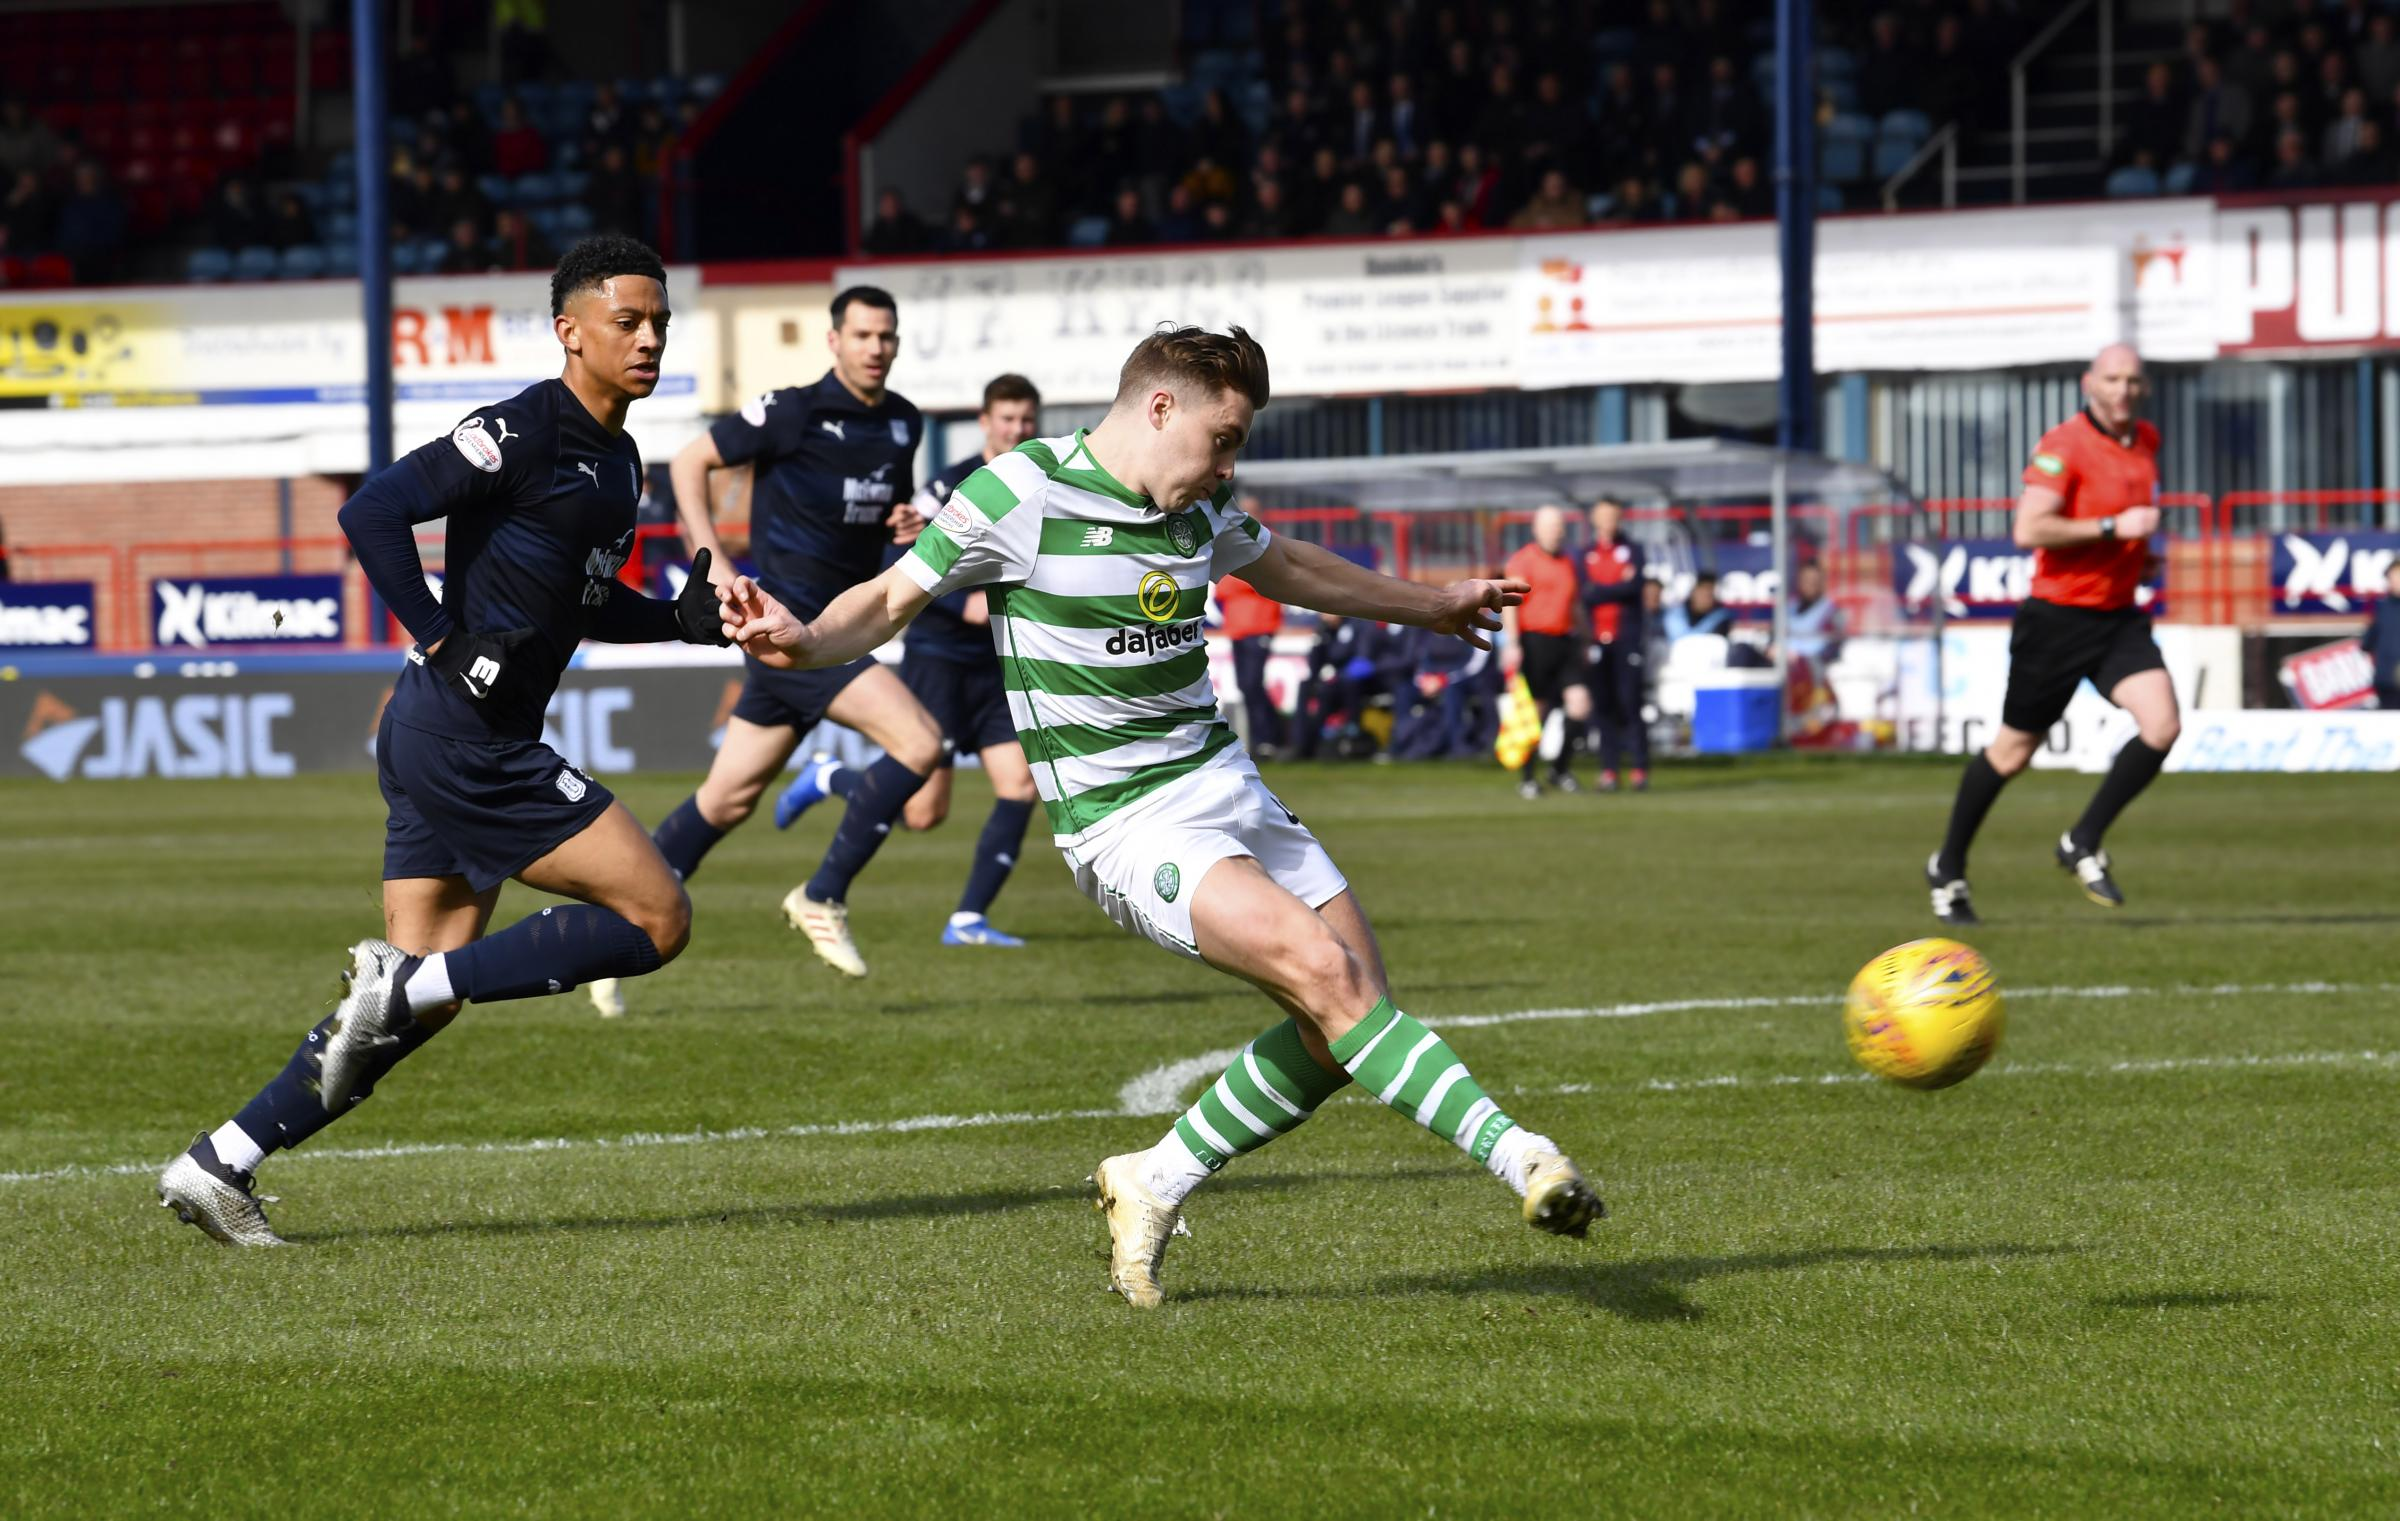 Dundee 0 Celtic 1: How the Celtic players rated